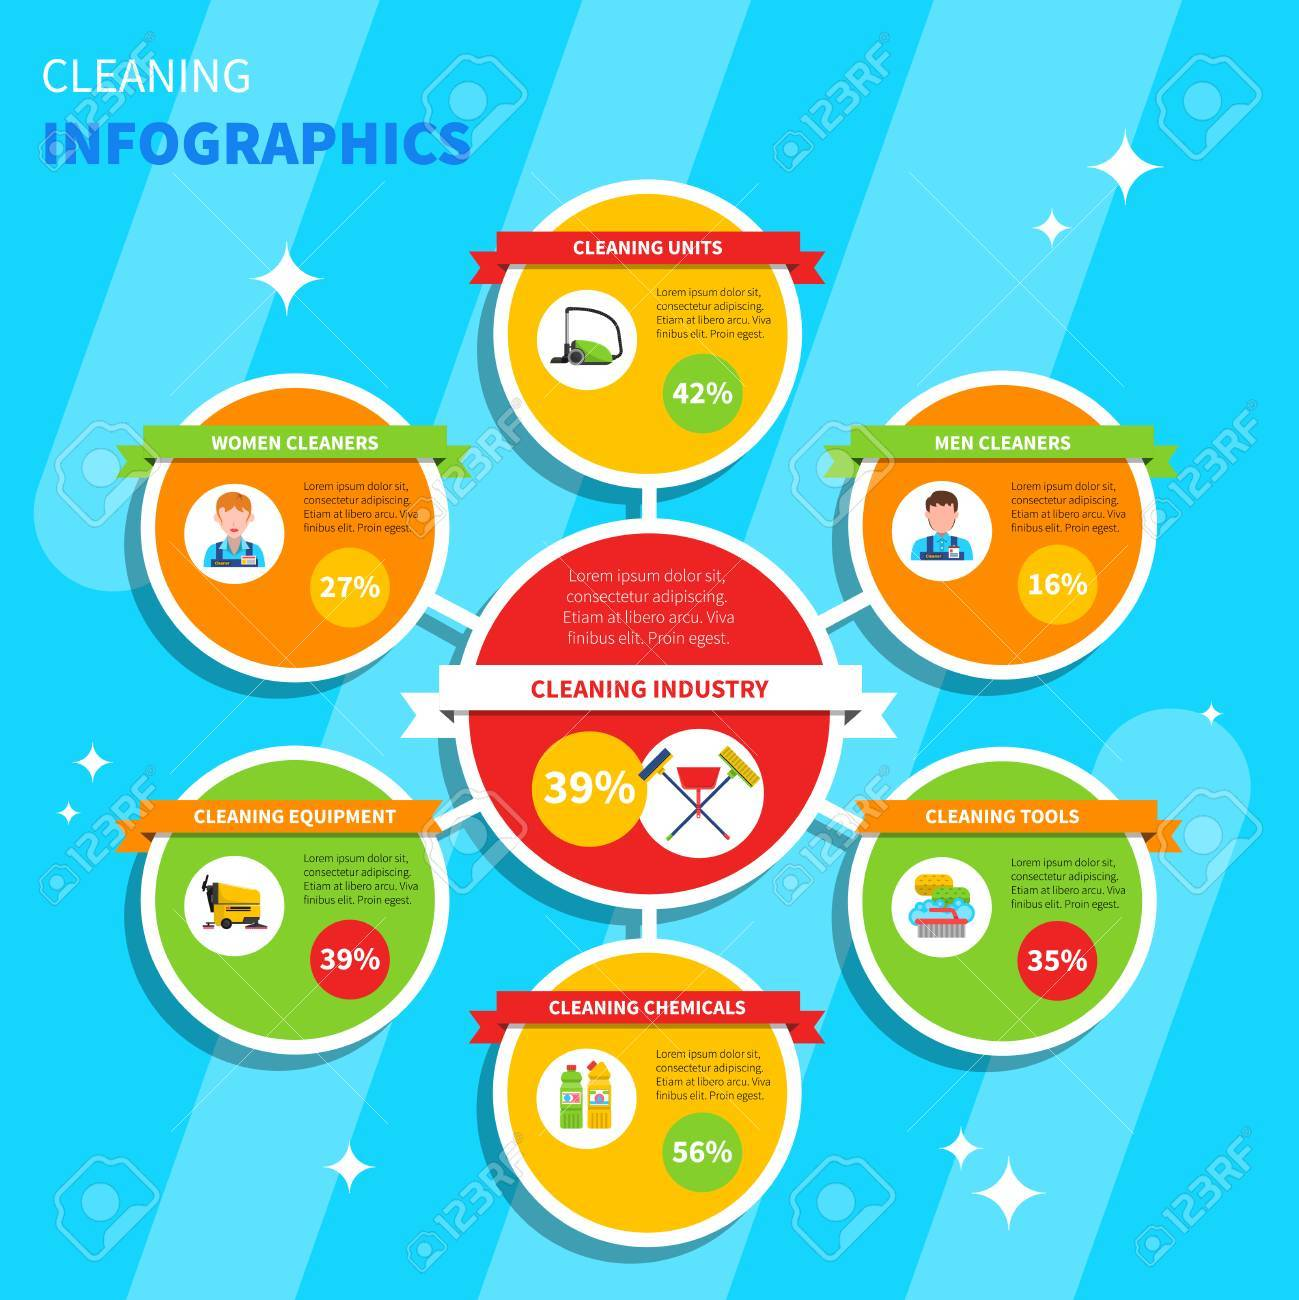 Cleaning Infographic Set With Cleaning Tools Chemicals And Equipment